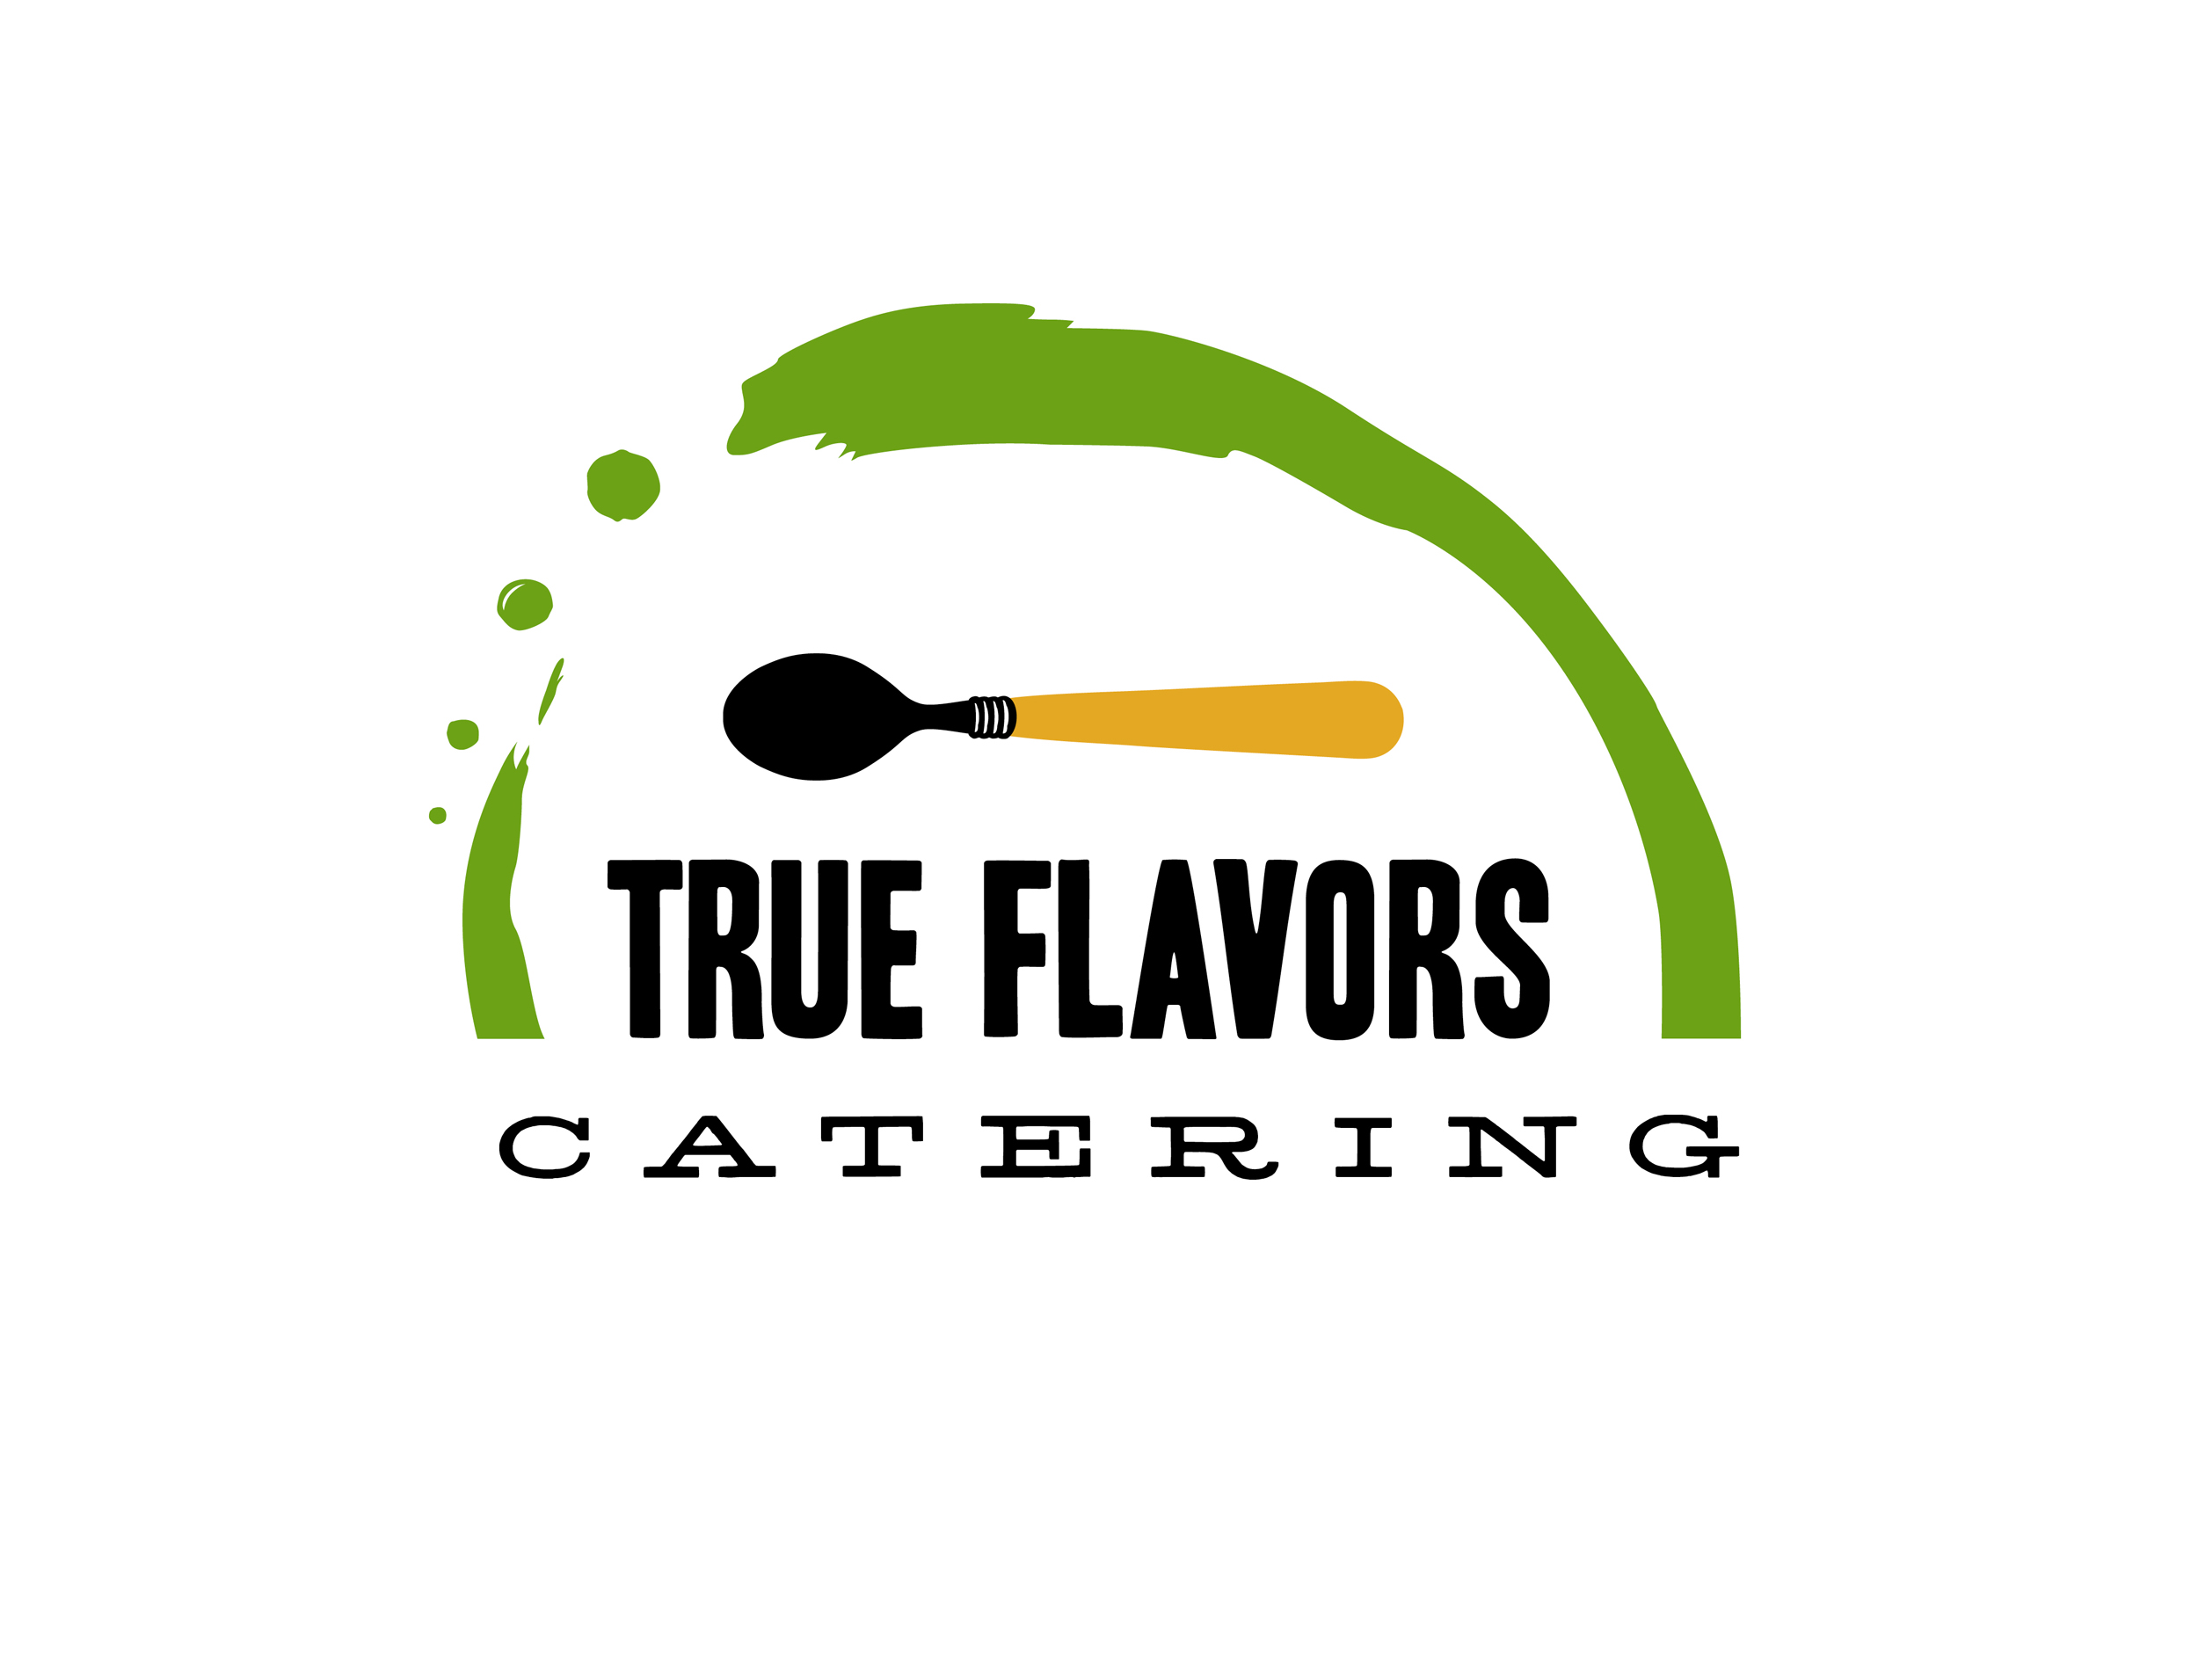 Restauranters wanted a logo for the catering company that utilized same color scheme as the diner logo.